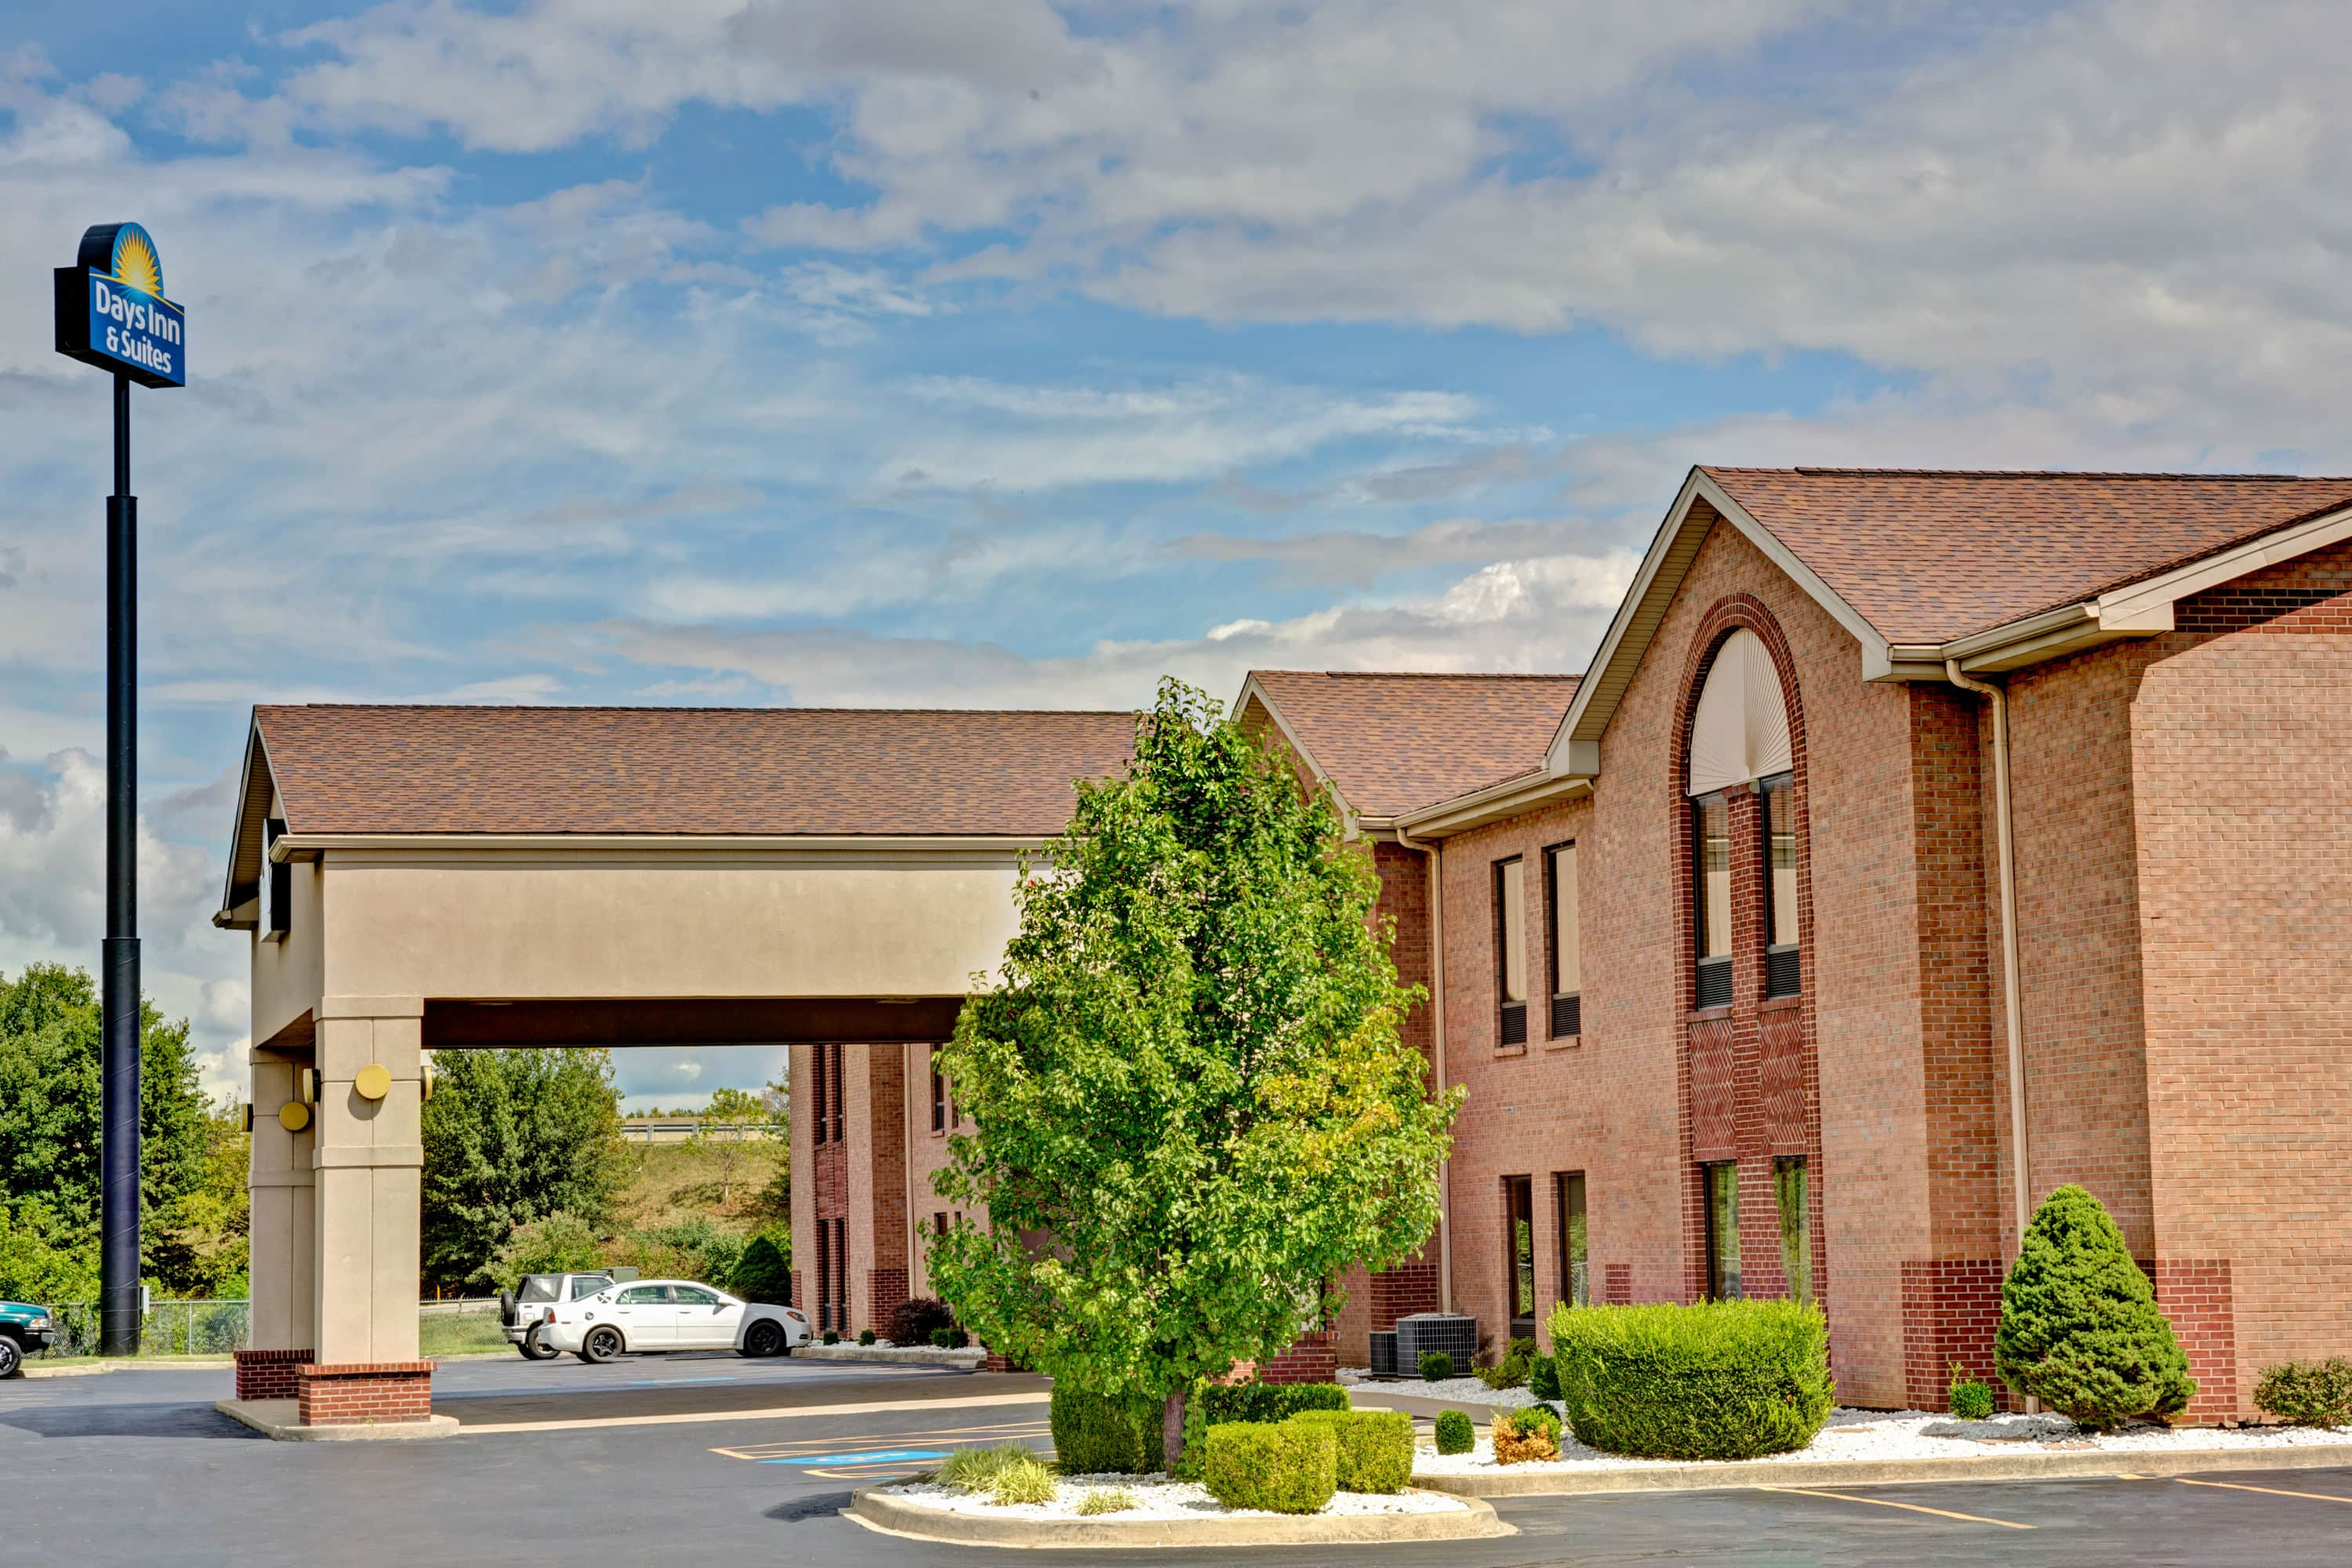 Interesting Exterior Of Days Inn U Suites Louisville Sw Hotel In Kentucky With Hotels Near Zoo